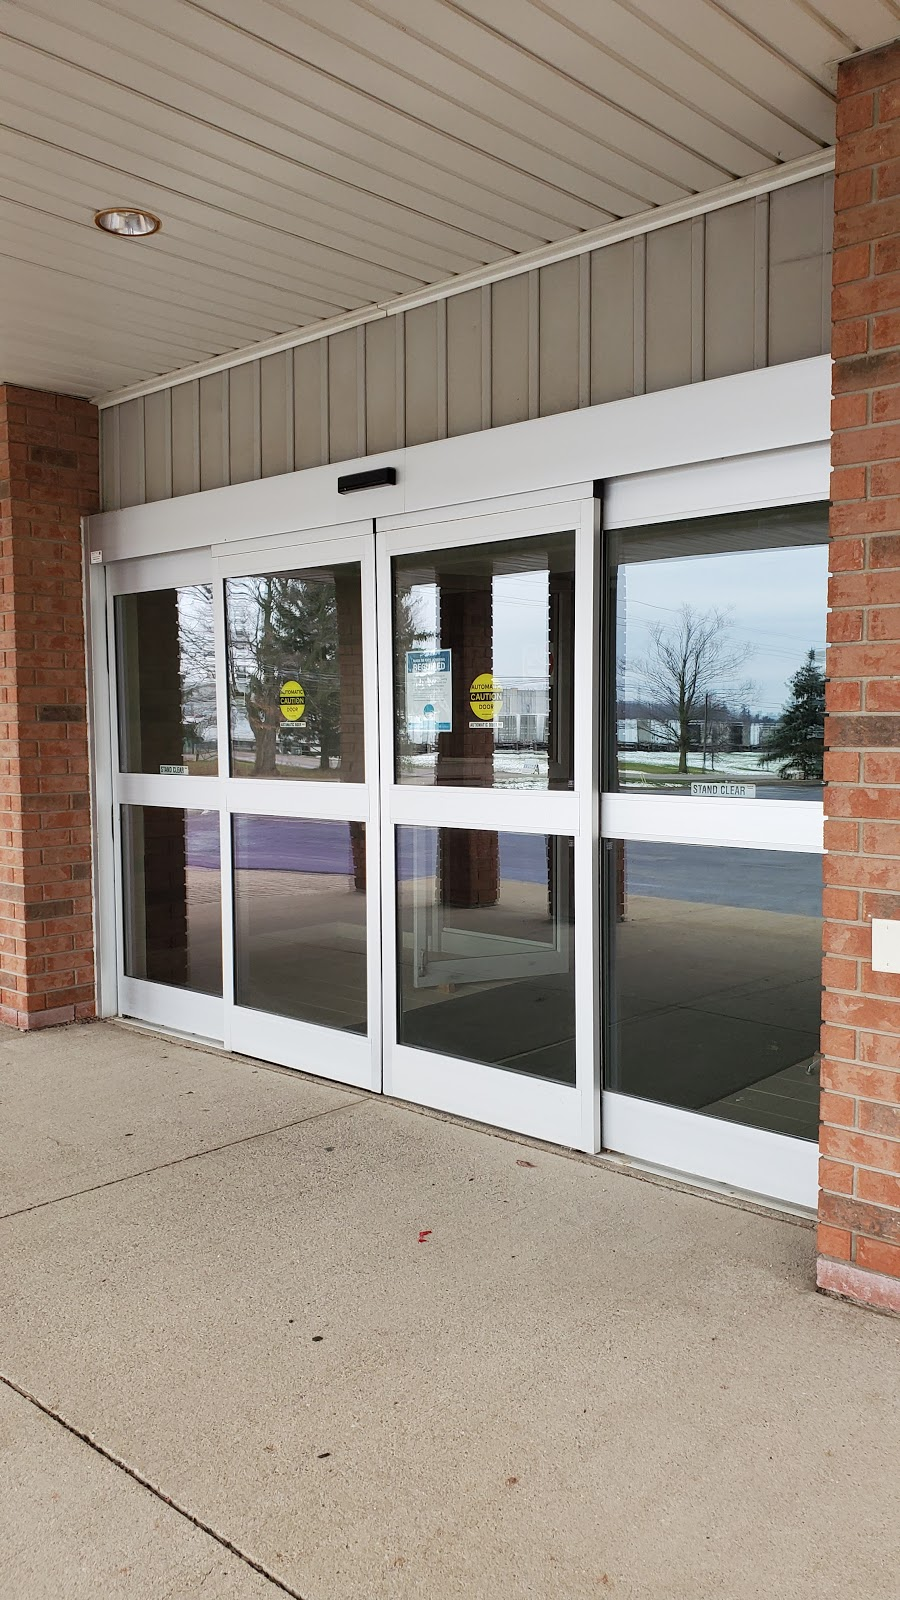 Ironstone Entrance Technologies Inc. | point of interest | 314 Brant School Rd, Brantford, ON N3T 5L4, Canada | 8662682262 OR +1 866-268-2262